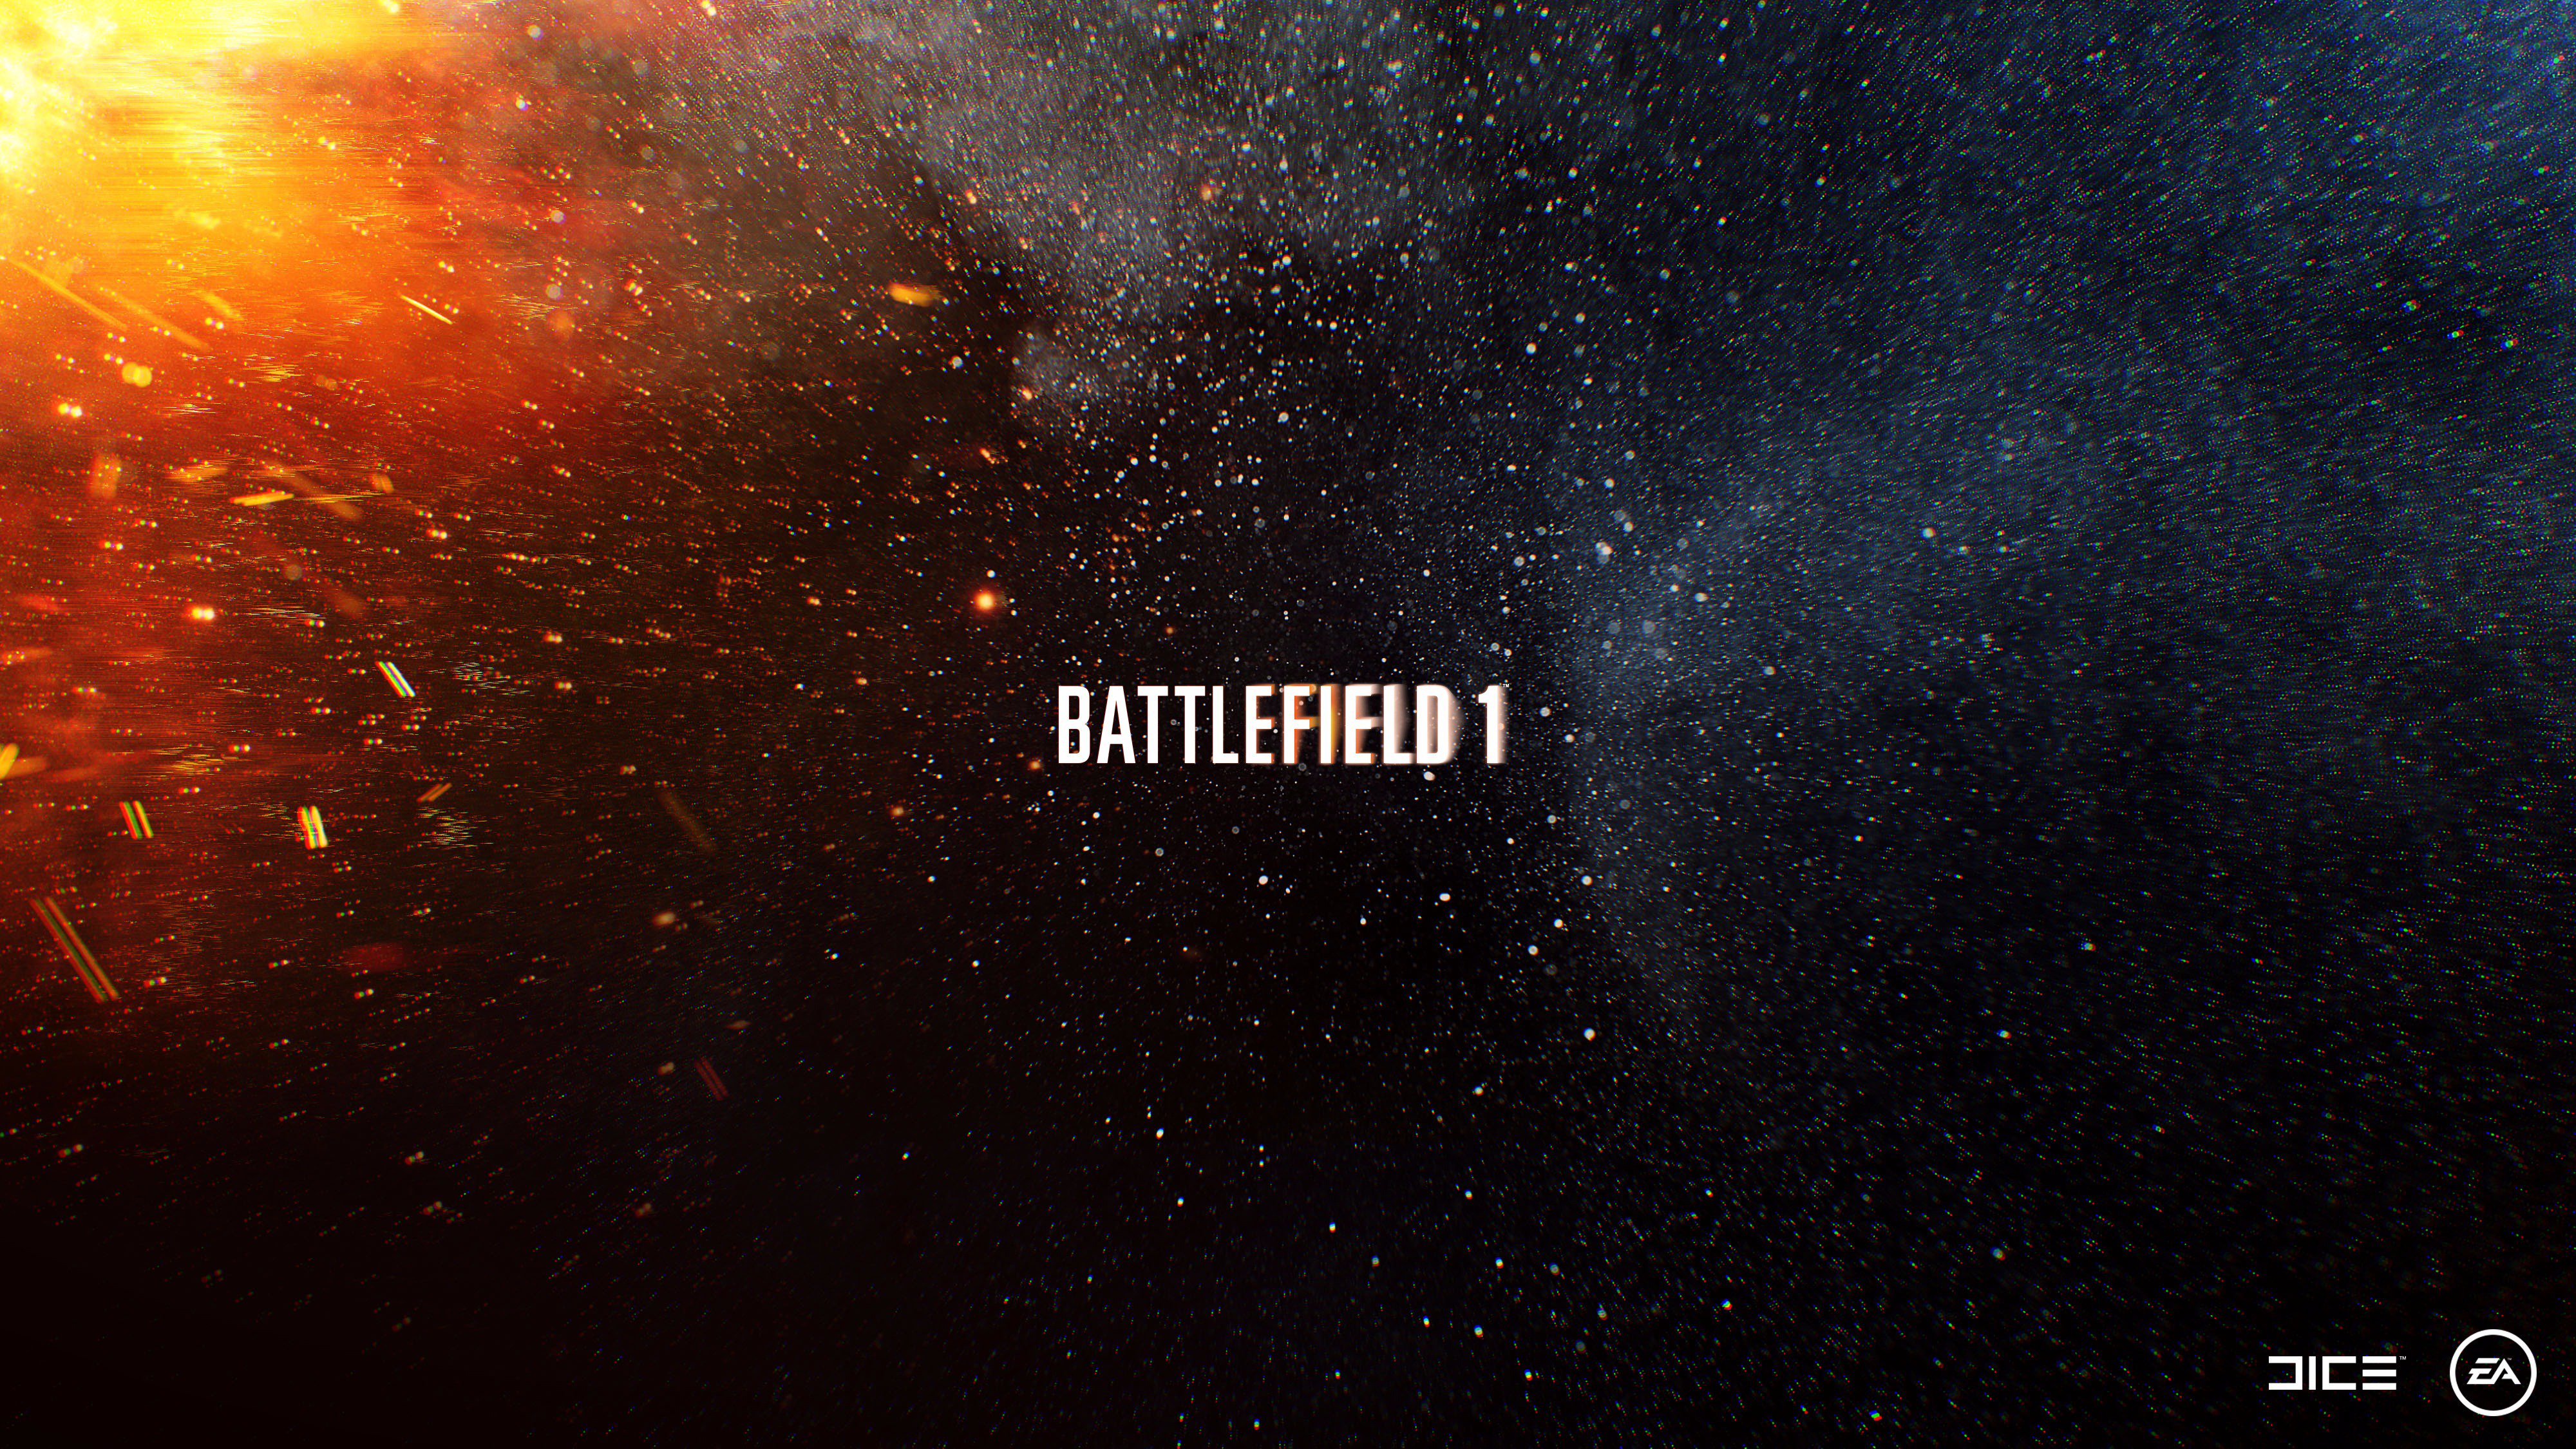 battlefield_1_wallpaper_4000_2250